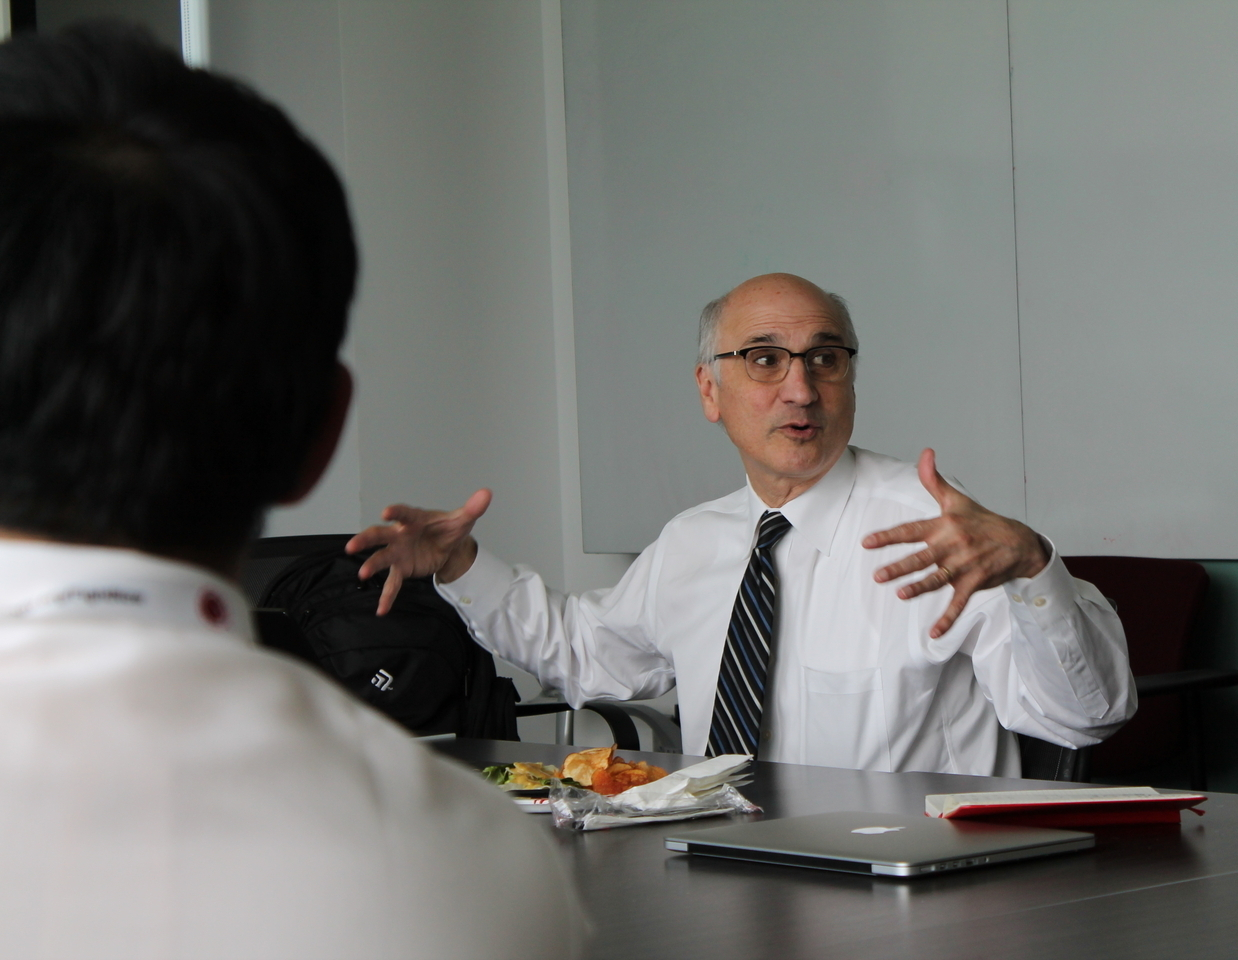 ITM Scholars Lunch and Learn from Renowned Doctor